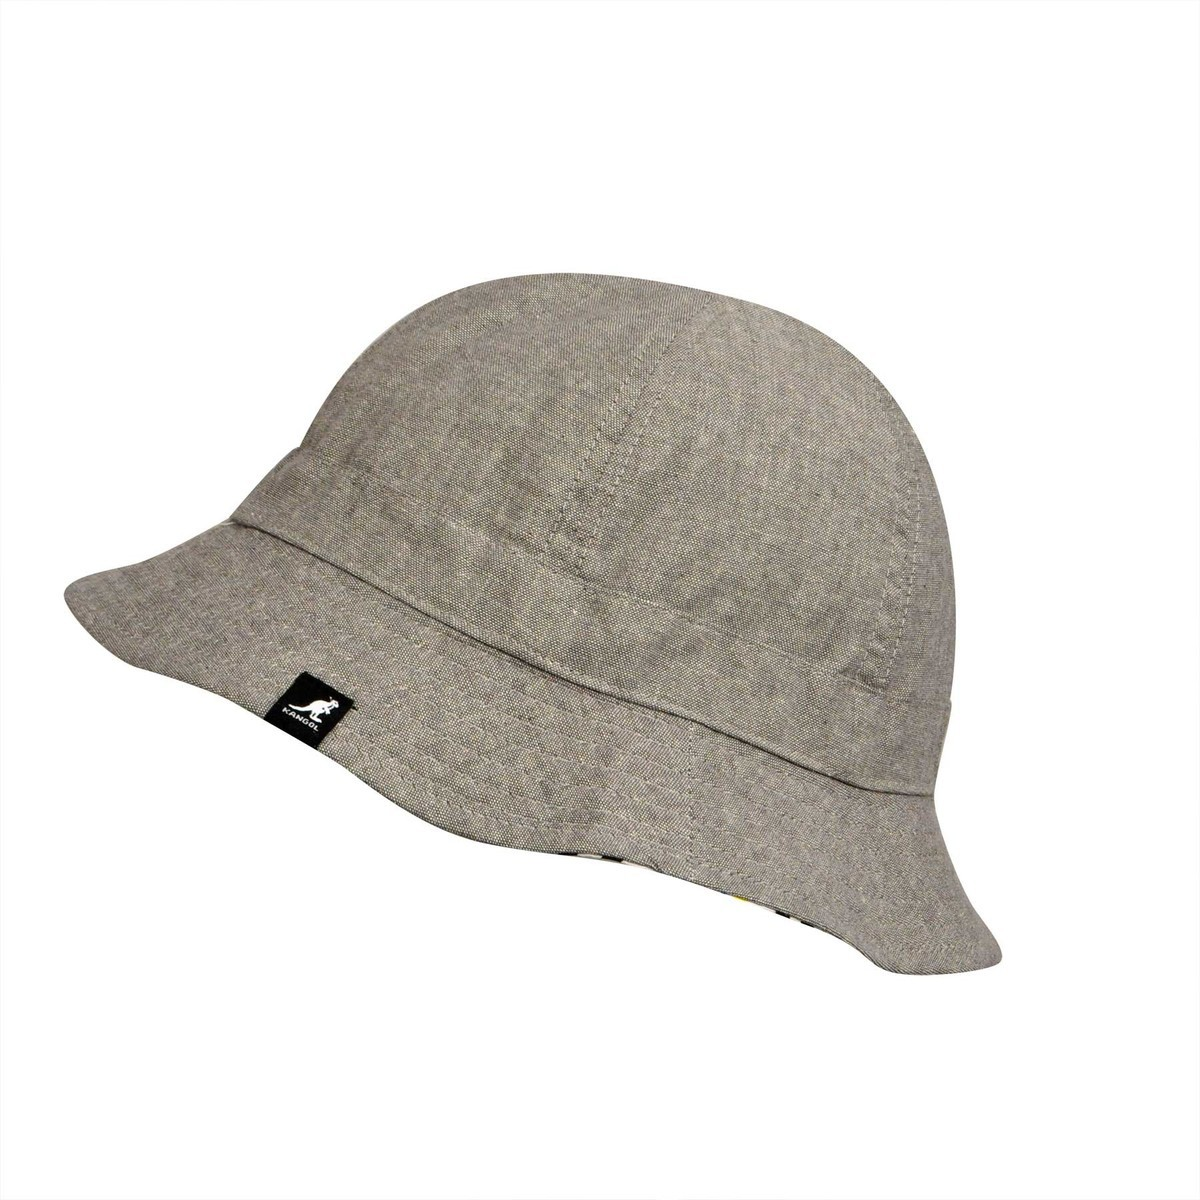 Kangol カンゴール Construct Reversible Casual Argent バケットハット 帽子 Argent